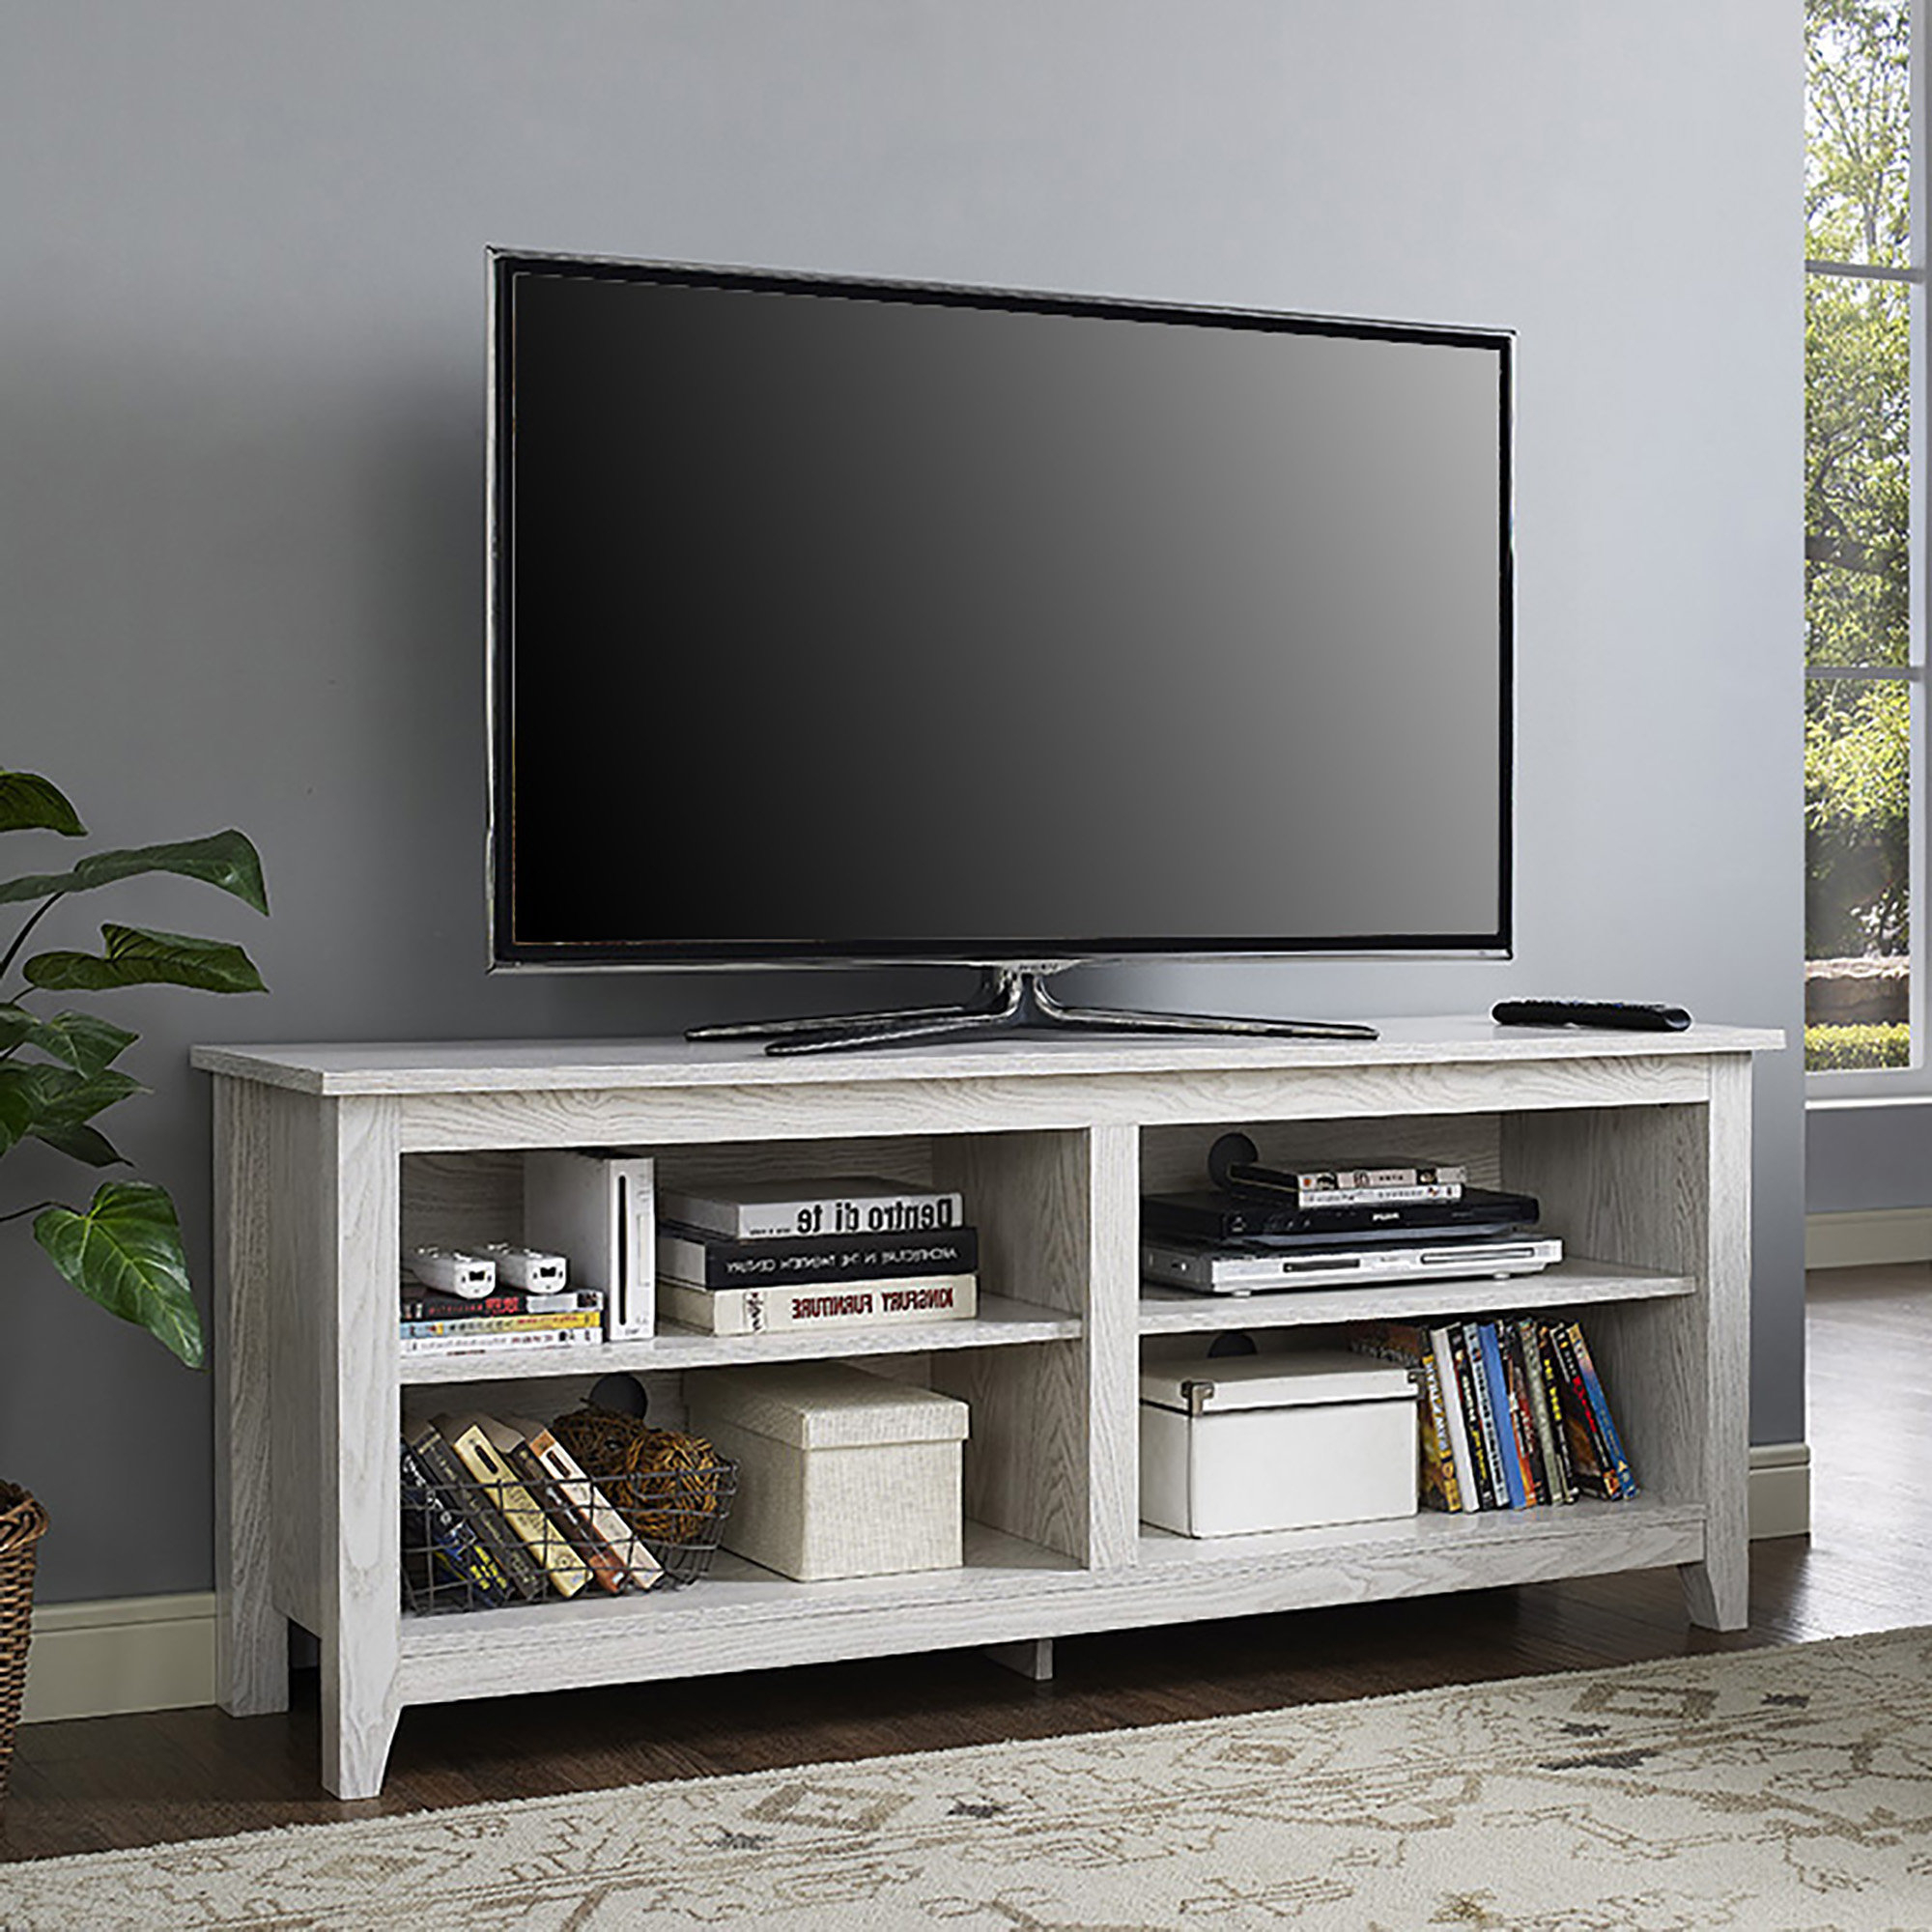 Cream Colored Tv Stands | Wayfair Regarding Century Blue 60 Inch Tv Stands (View 6 of 20)